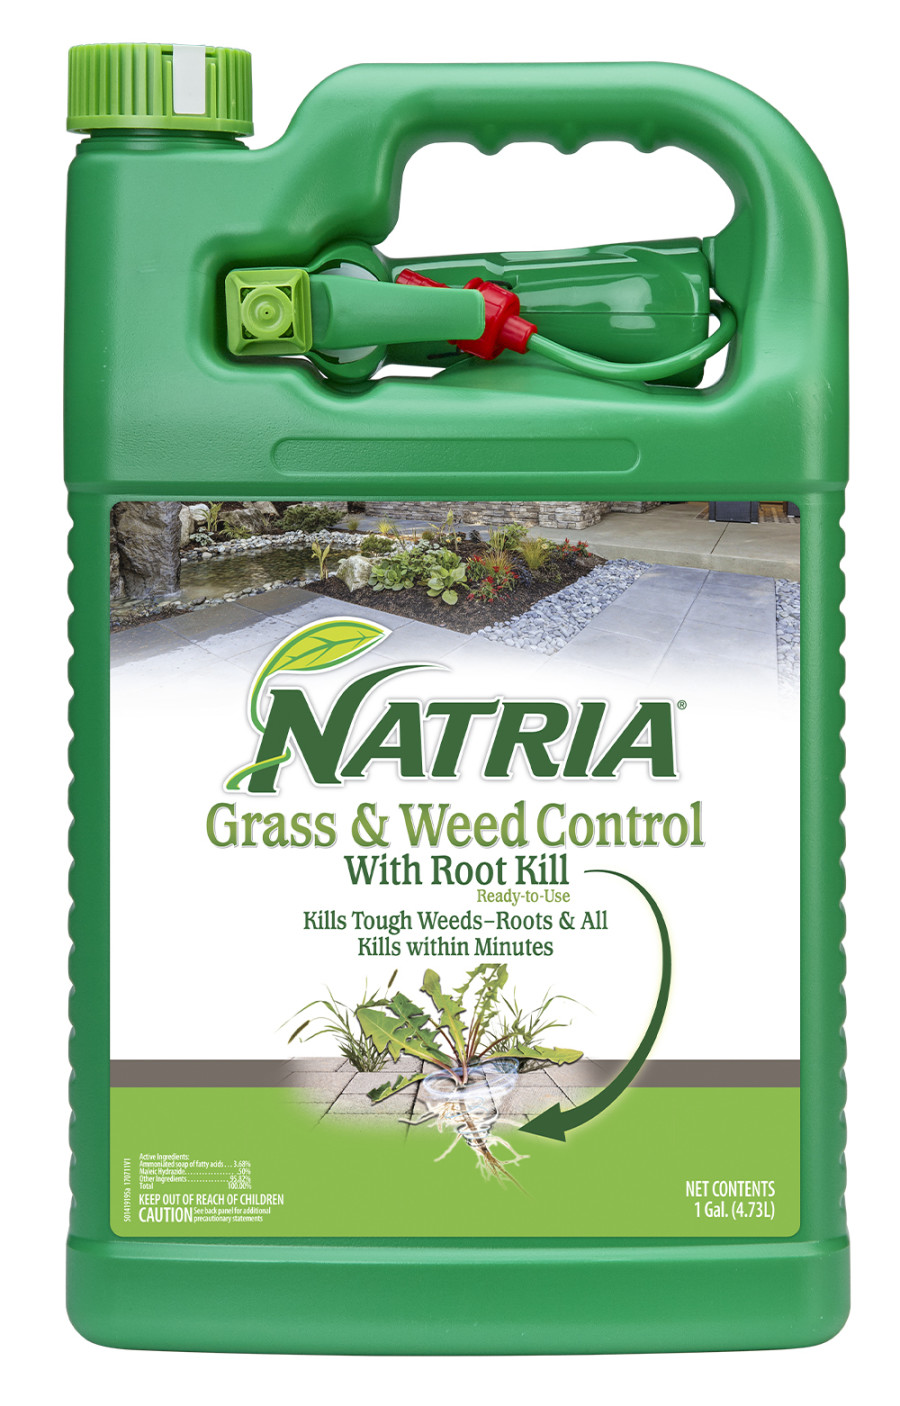 BioAdvanced Natria Grass & Weed Control w/Root Kill Ready to Use Nested Sprayer Green Bottle 4ea/1 gal